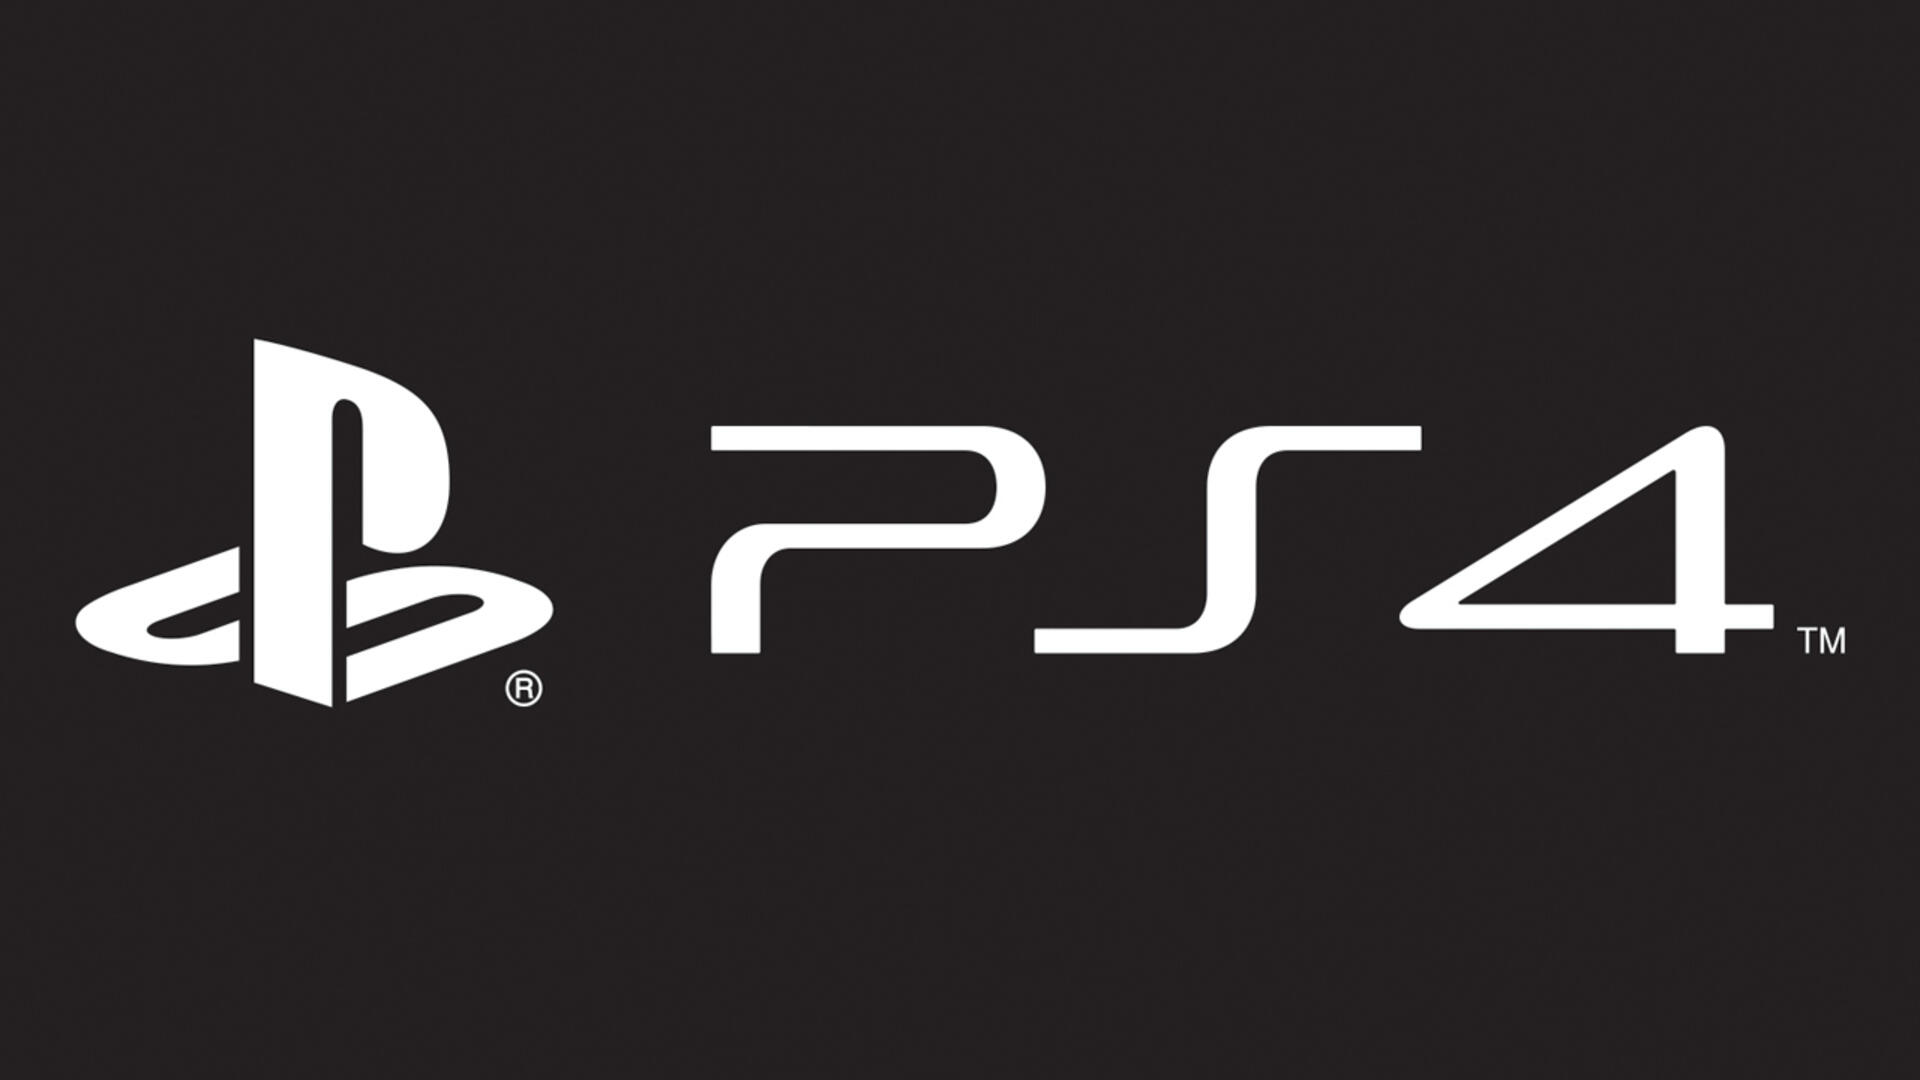 USG Reacts to Sony's E3 Press Conference